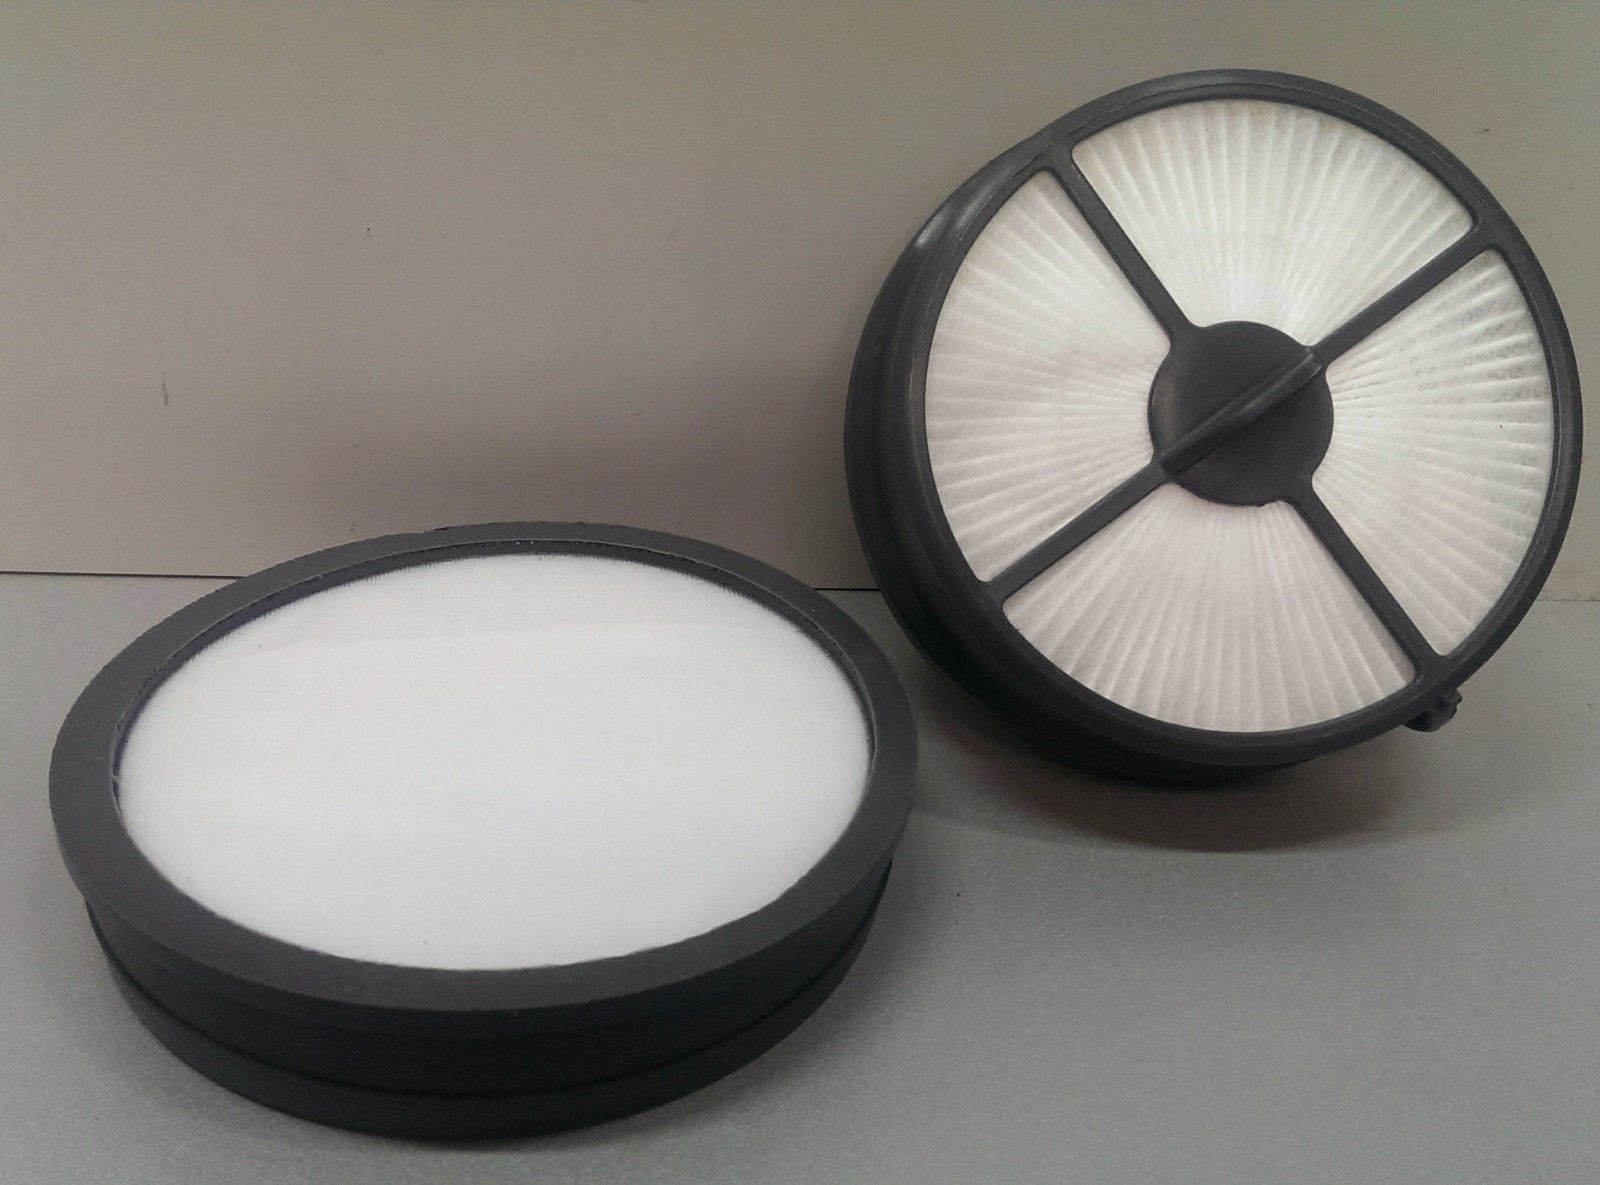 New UH70400 Hoover WindTunnel Air Filter Bundle Kit,Includes 303902001//303903001